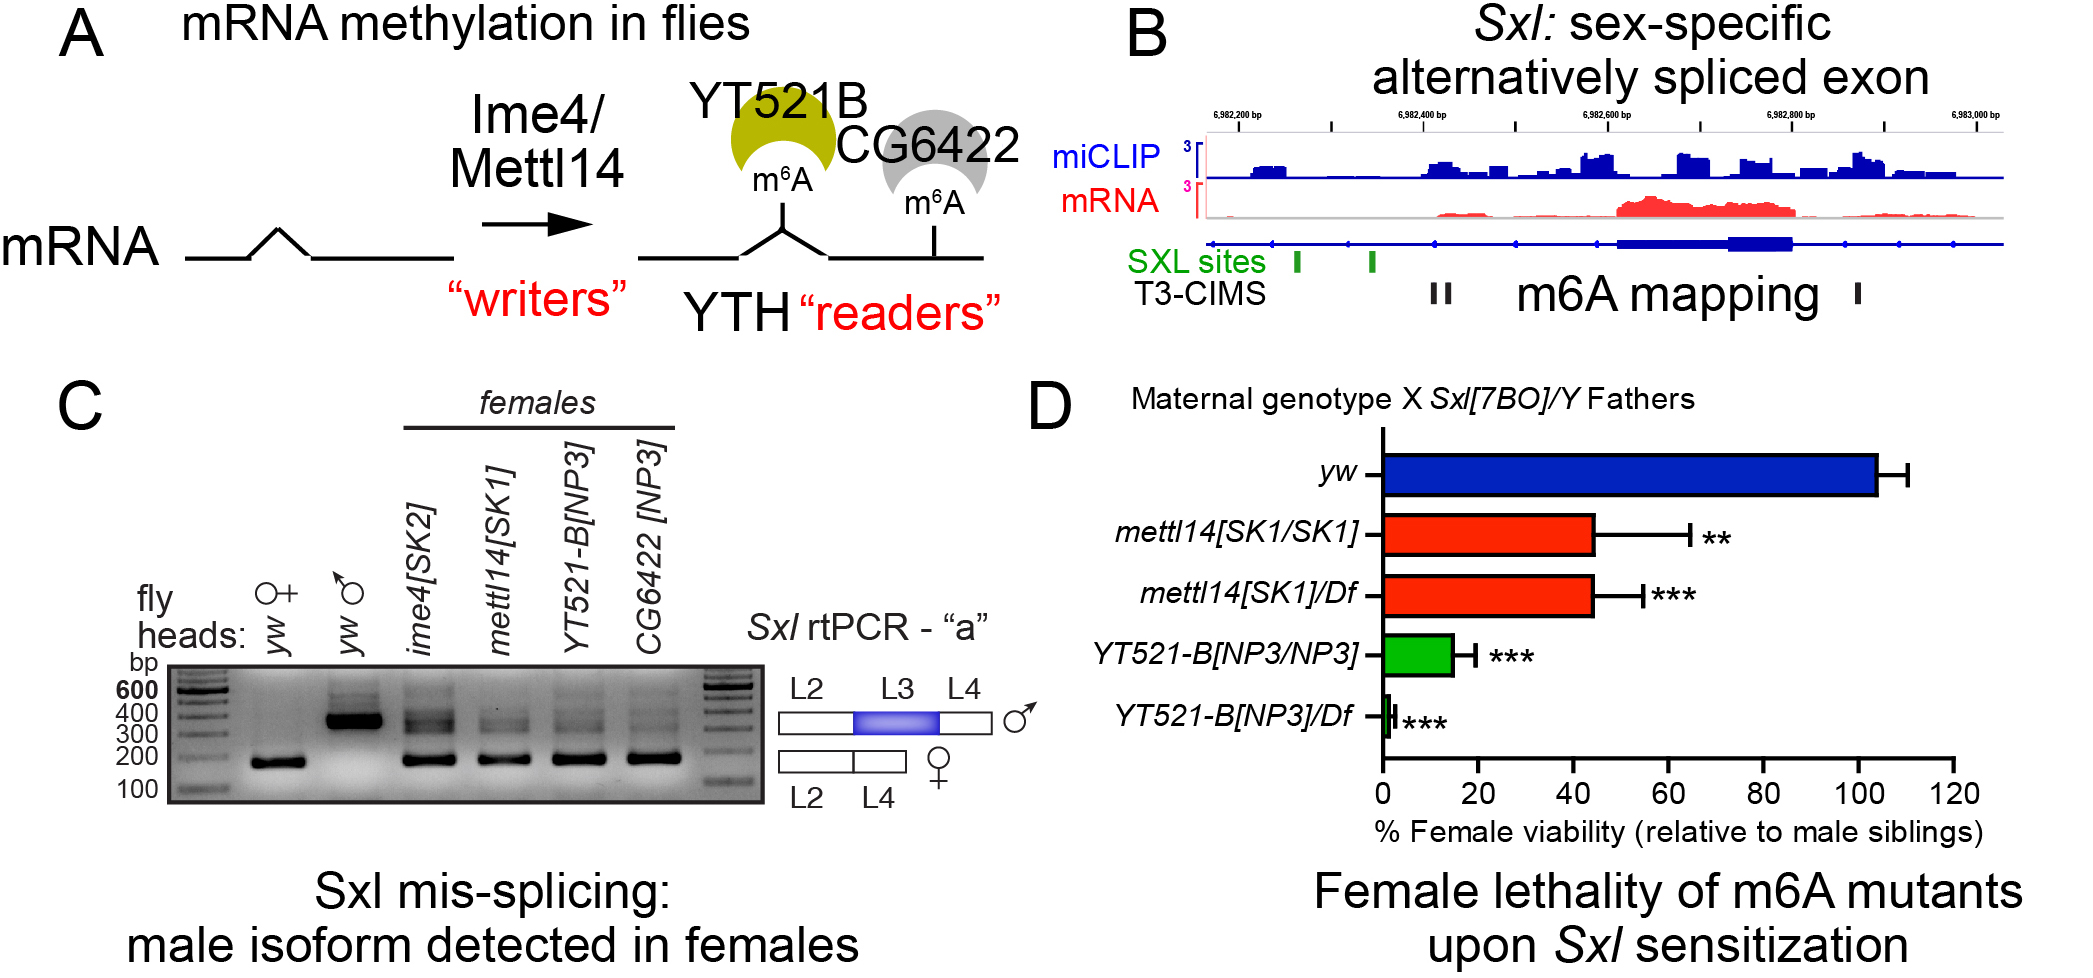 Figure 3. Drosophila m6A pathway. (A) m6A writers and readers. (B) Mapping of m6A modifications (miCLIP track) relative to mRNA-seq identifies extensive modification in the intronic regions (CIMS, nt-precision m6A sites) flanking the sex-specifically alternatively spliced exon of Sxl, the master female determinant. (C) rt-PCR tests reveal accumulation of the male isoform of Sxl in various m6A mutant females. (D) m6A mutant females exhibit lethality when made heterozygous for Sxl, indicating failure of the Sxl autoregulatory program.